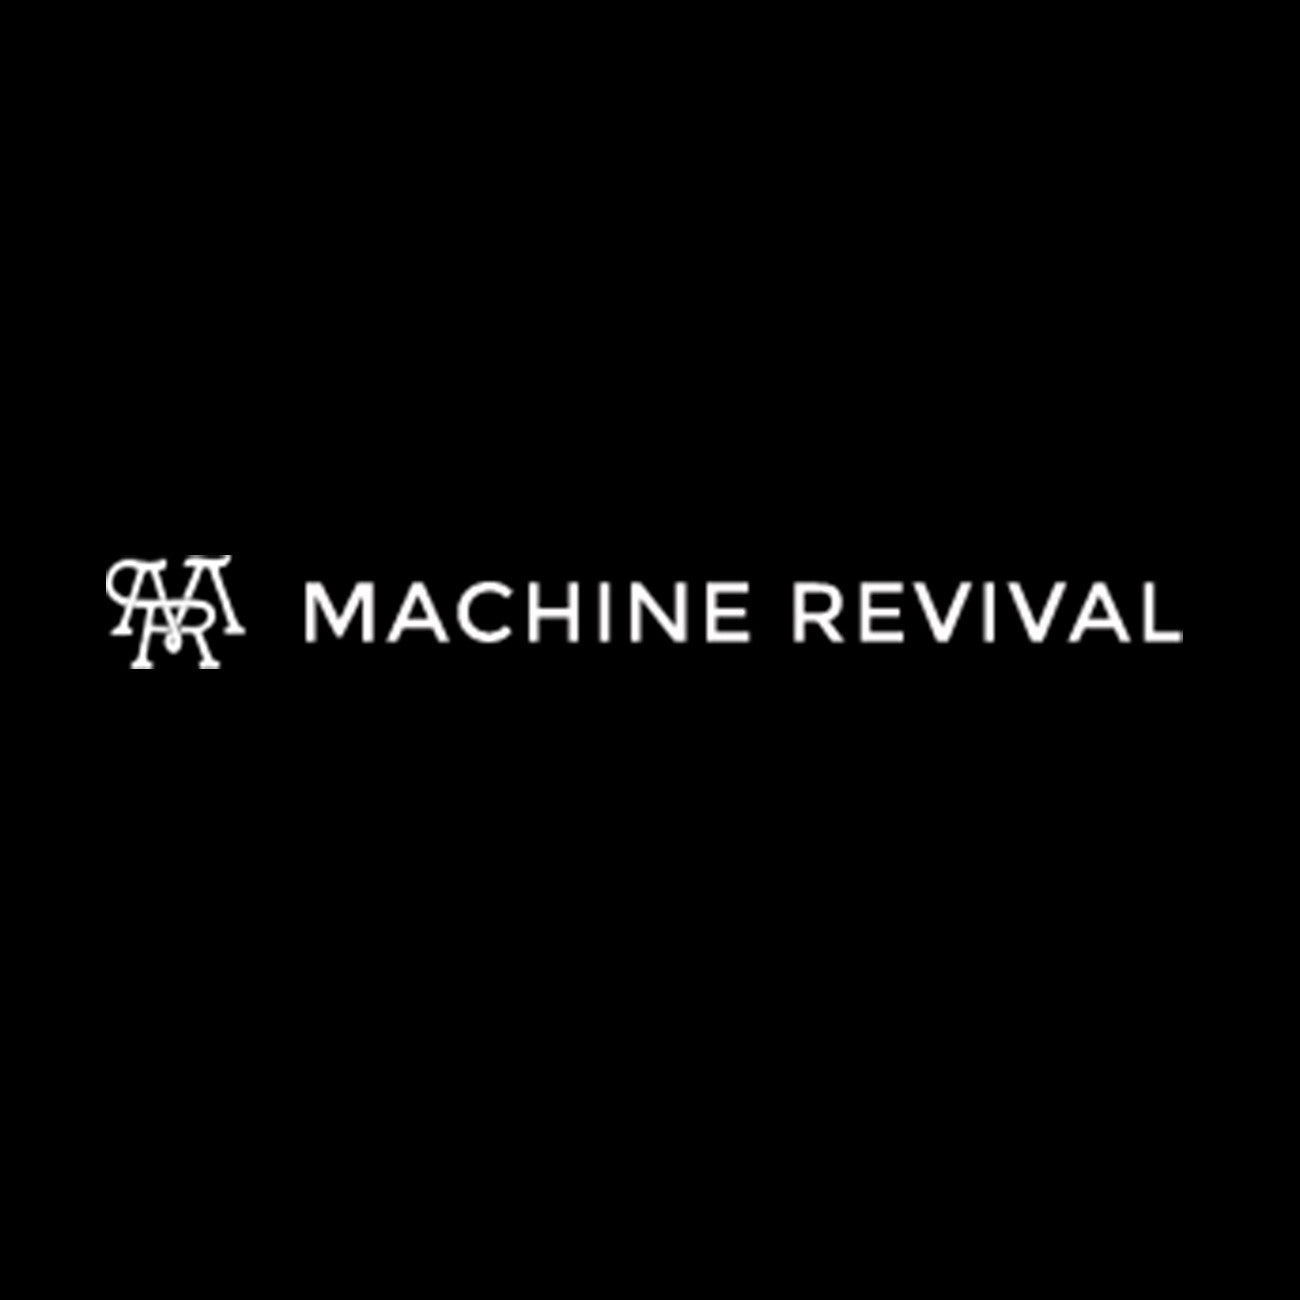 Machine Revival